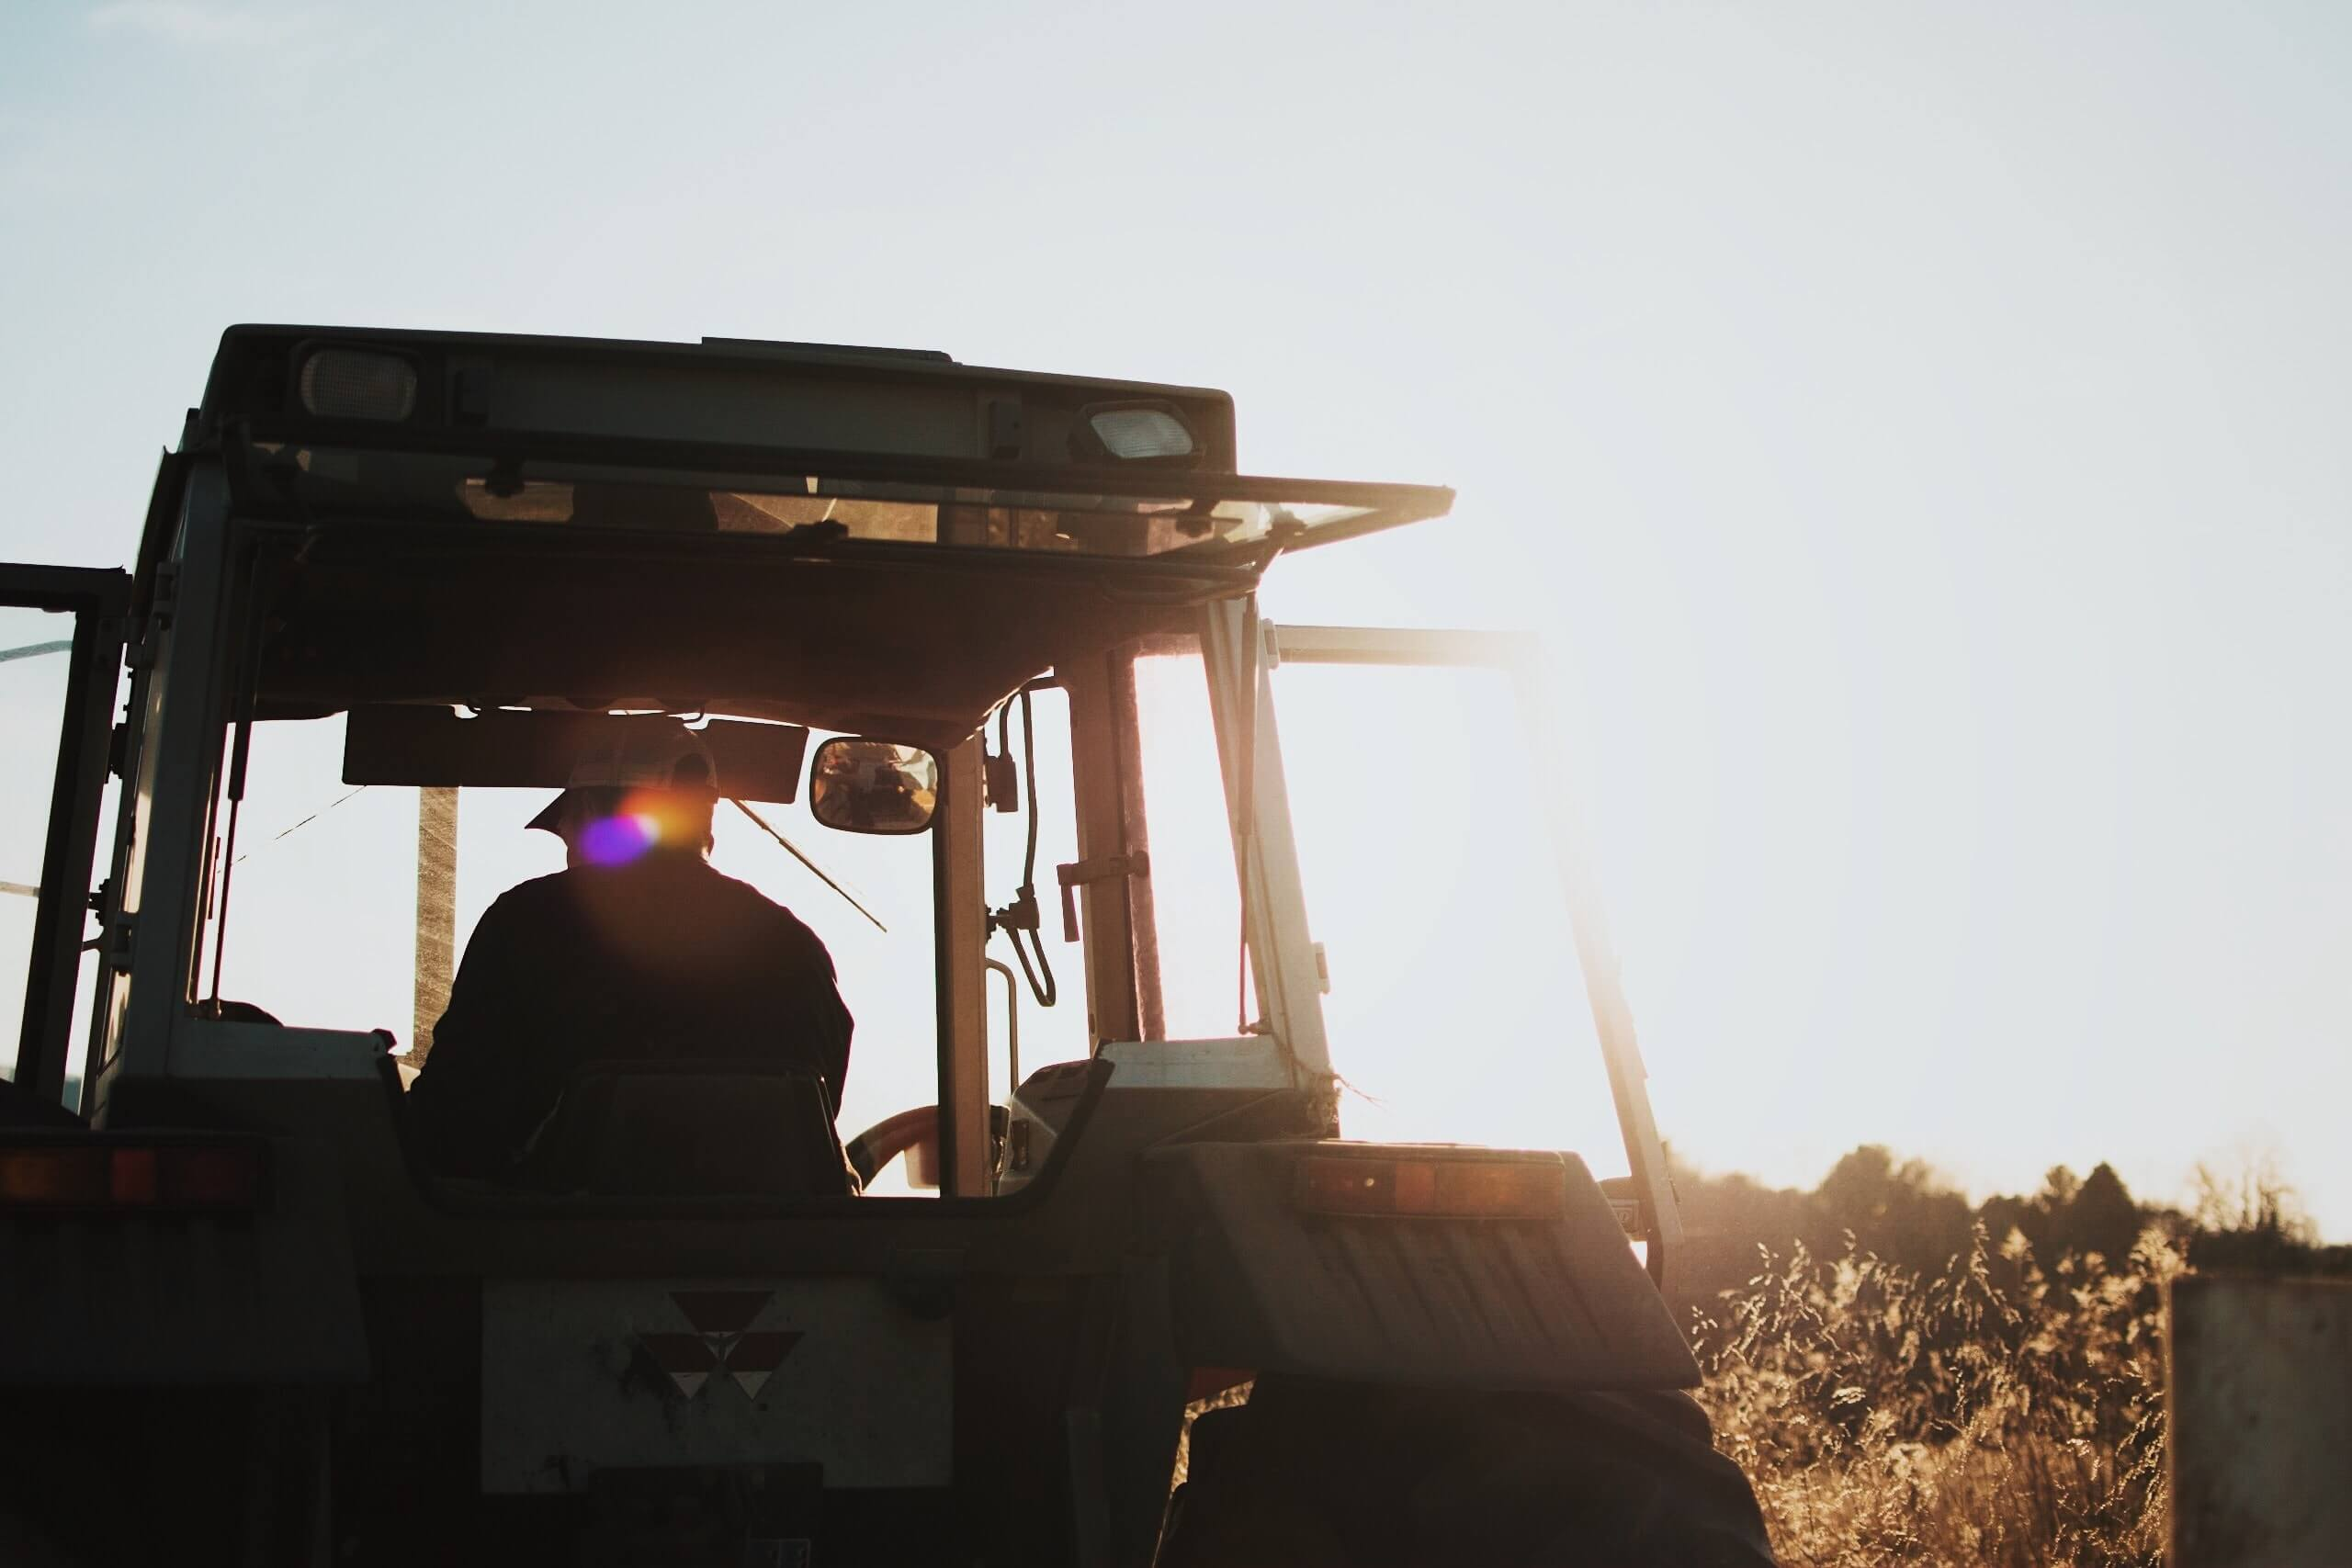 silhouette of person in tractor working a field